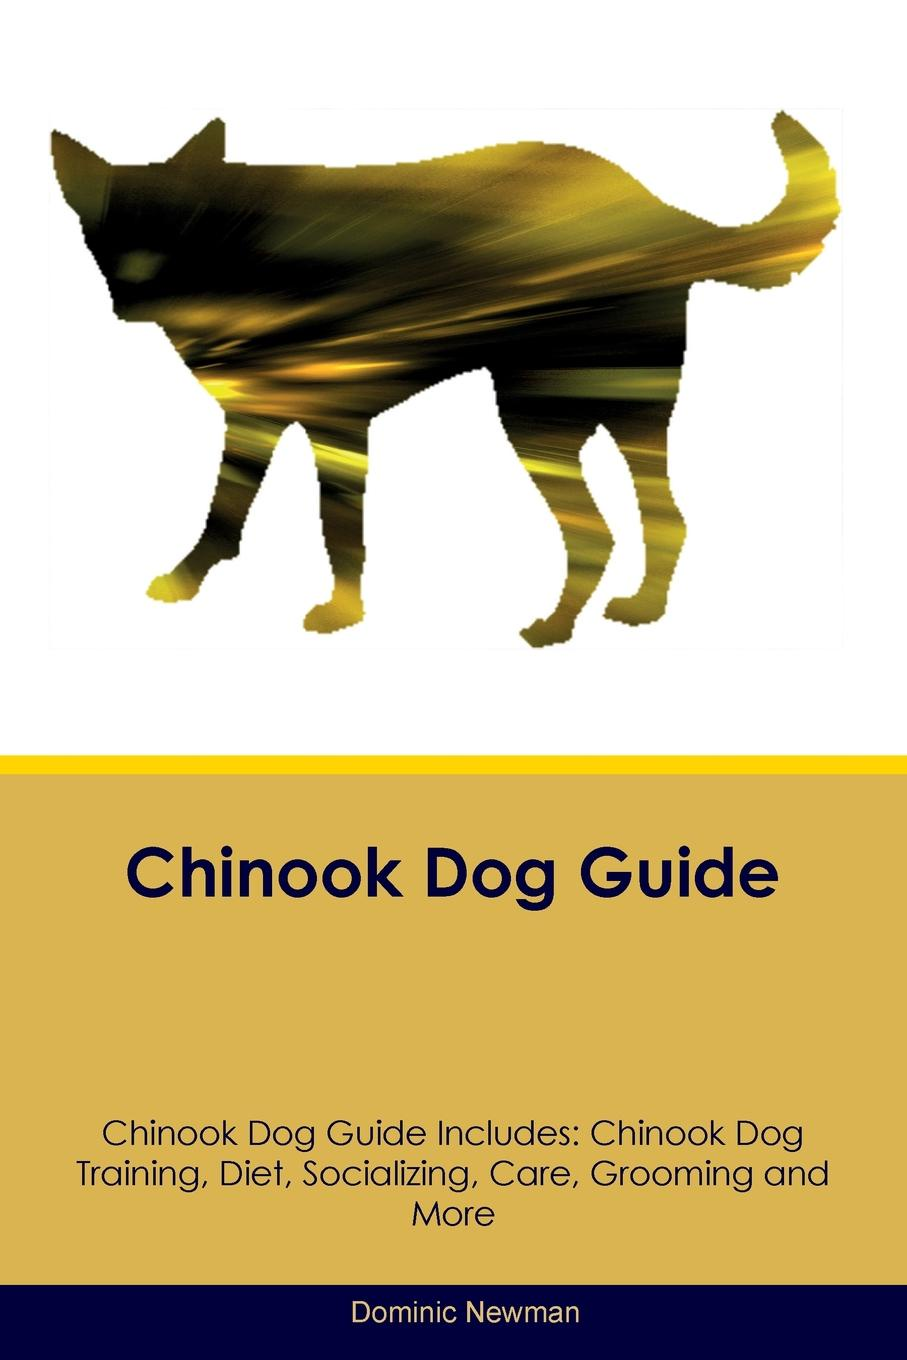 Dominic Newman Chinook Dog Guide Chinook Dog Guide Includes. Chinook Dog Training, Diet, Socializing, Care, Grooming, Breeding and More chaos маска chinook bandana черный